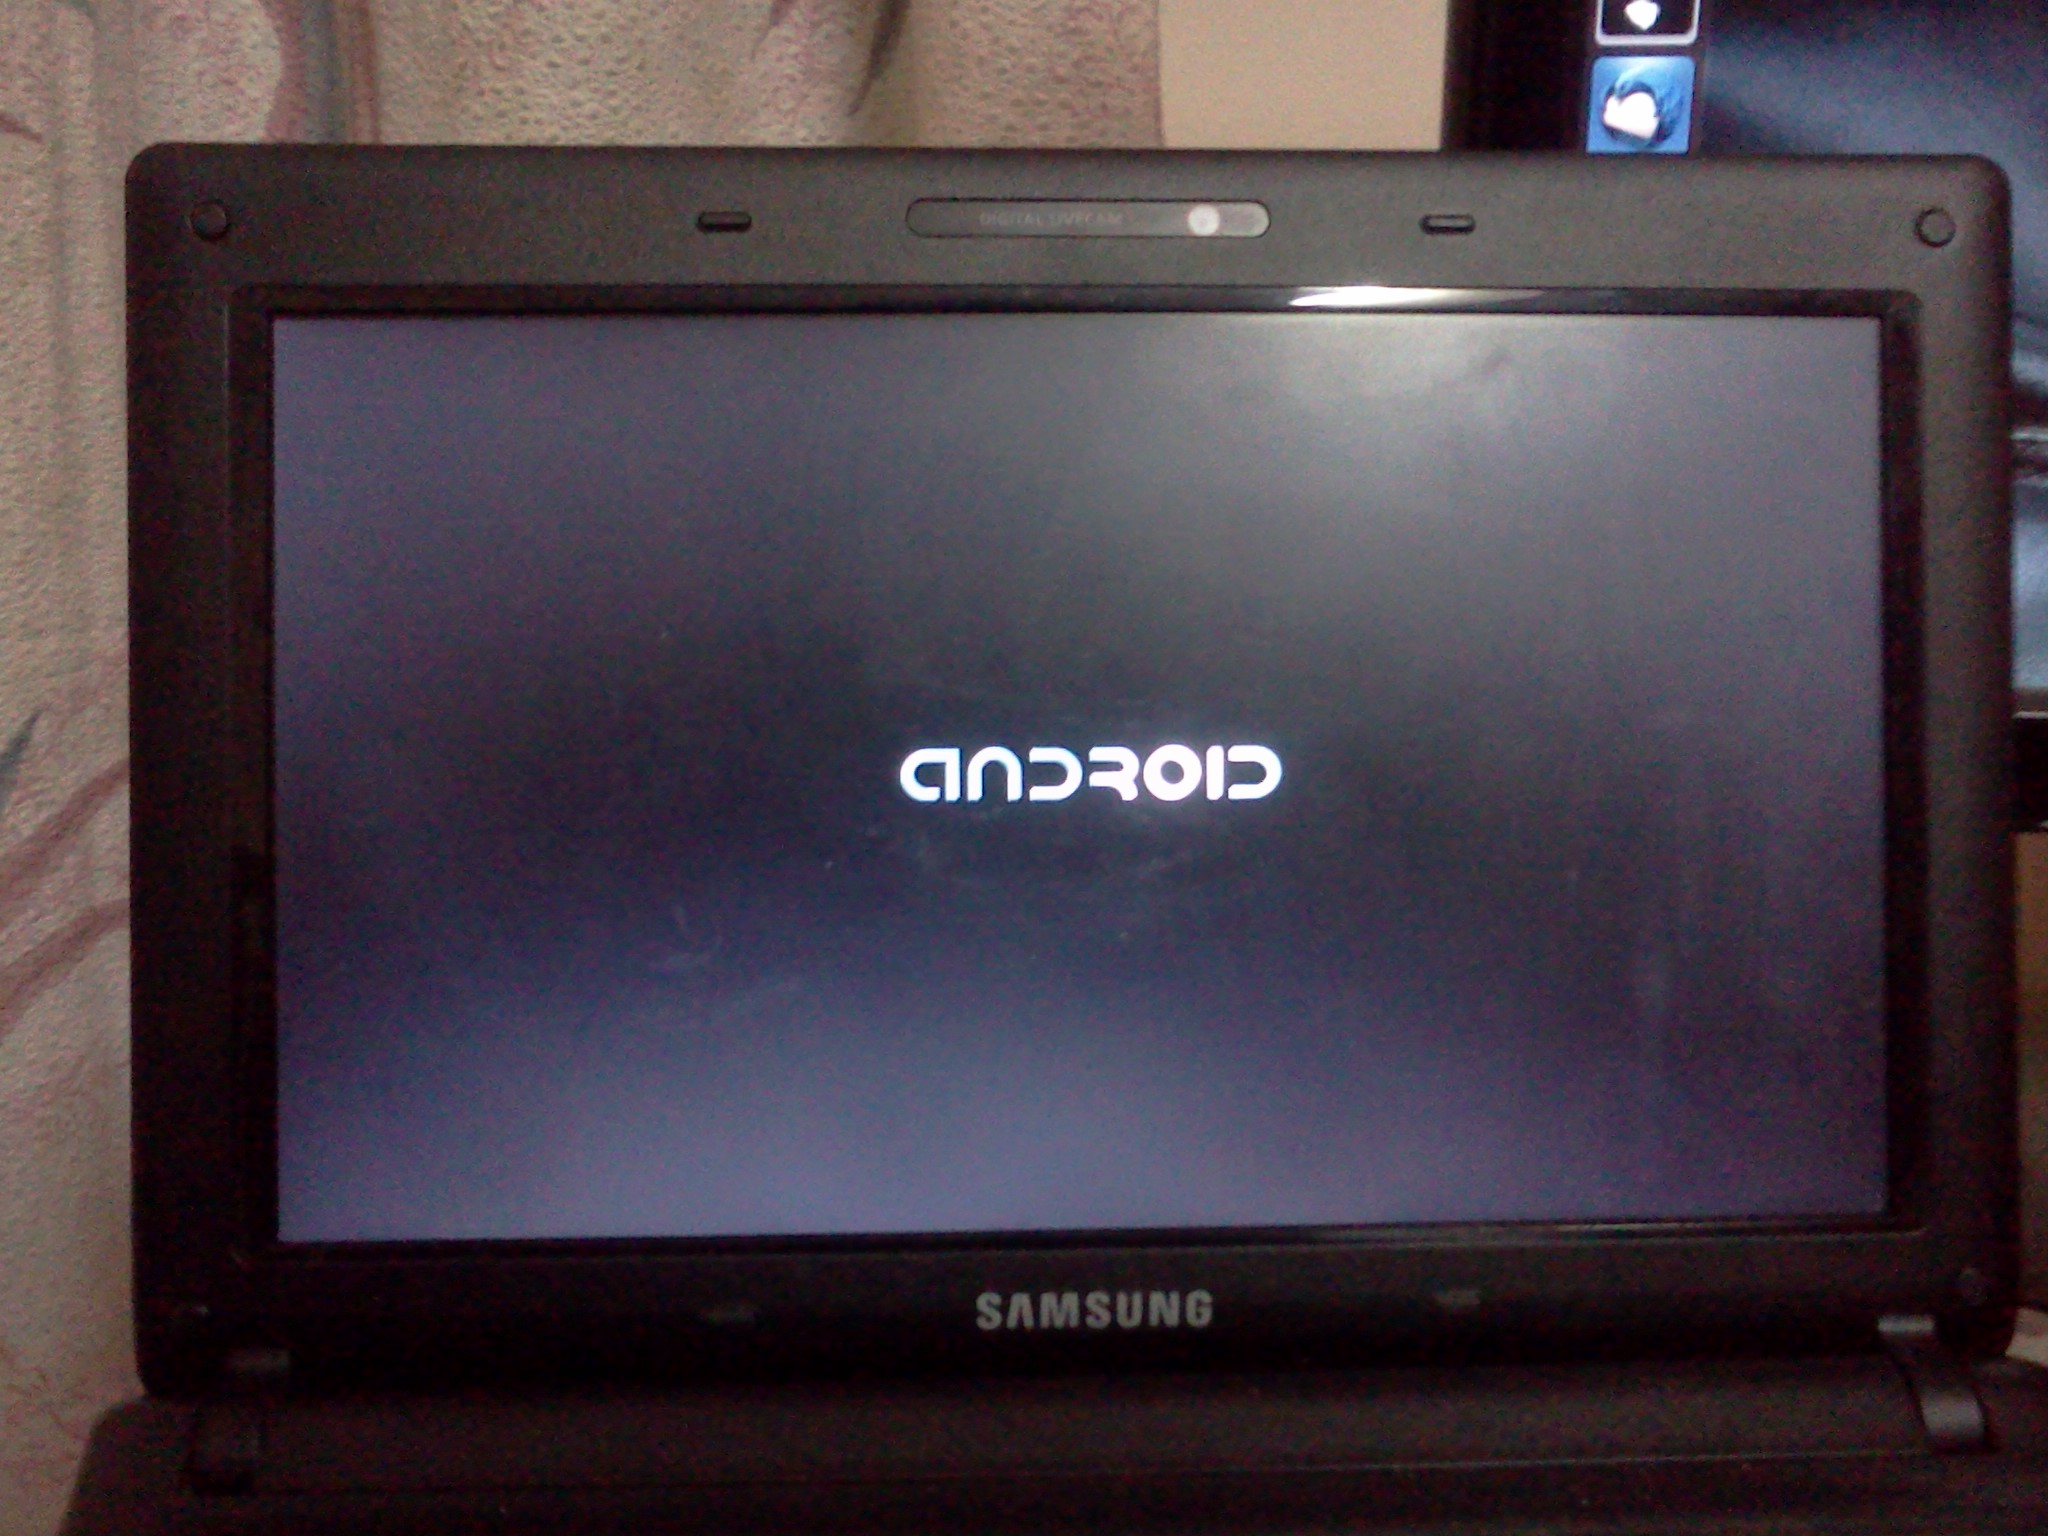 How To Install Android 4.0 (ICS) On Your Netbook